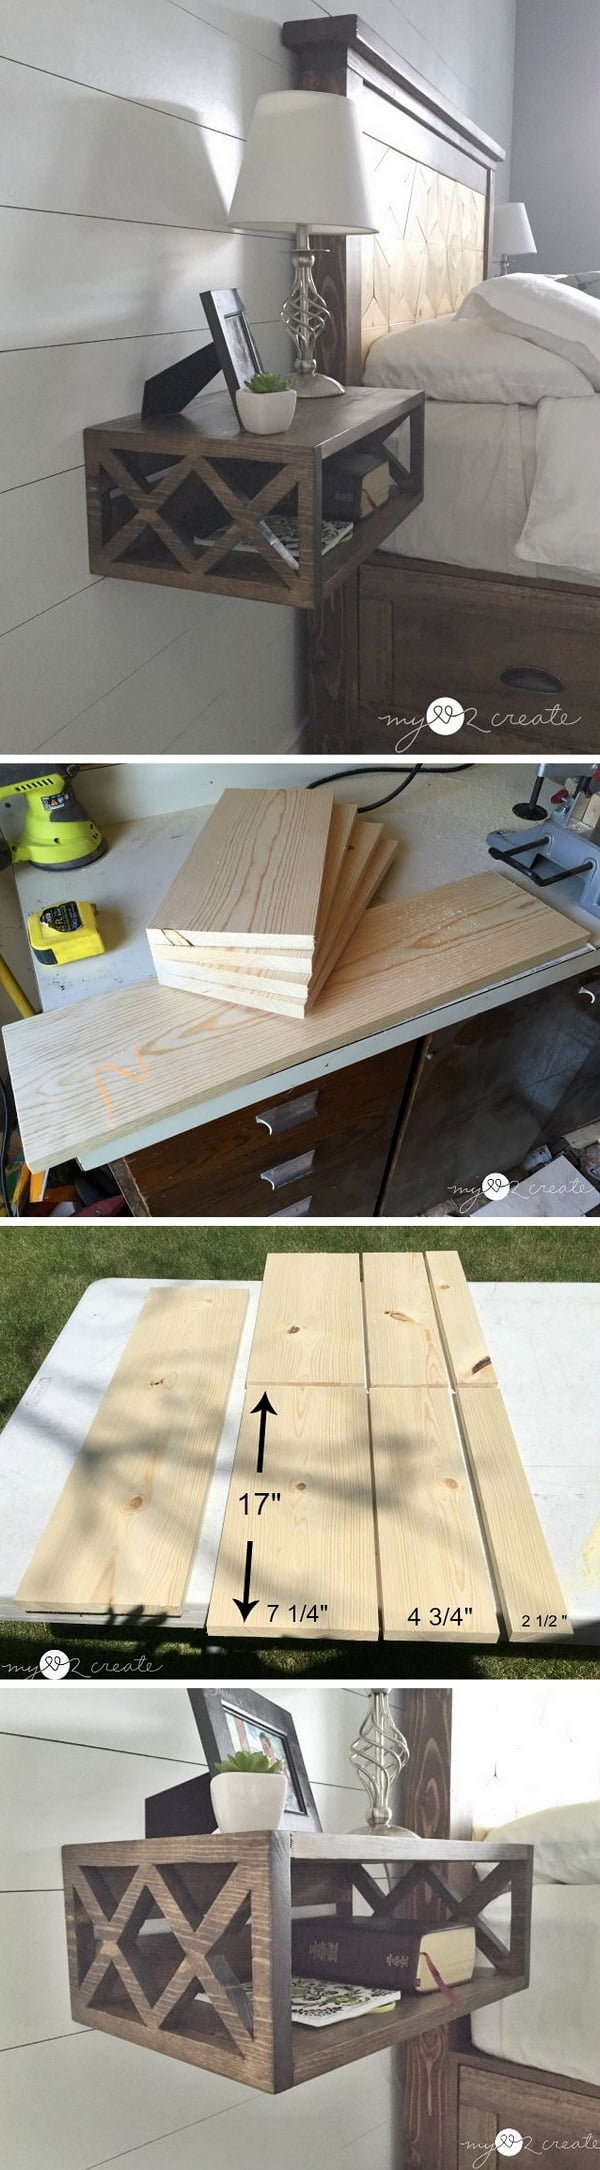 12 Easy DIY Nightstands That You Can Build on a Budget - Check out how to build an easy DIY floating nightstand from a single 1x8x8 board